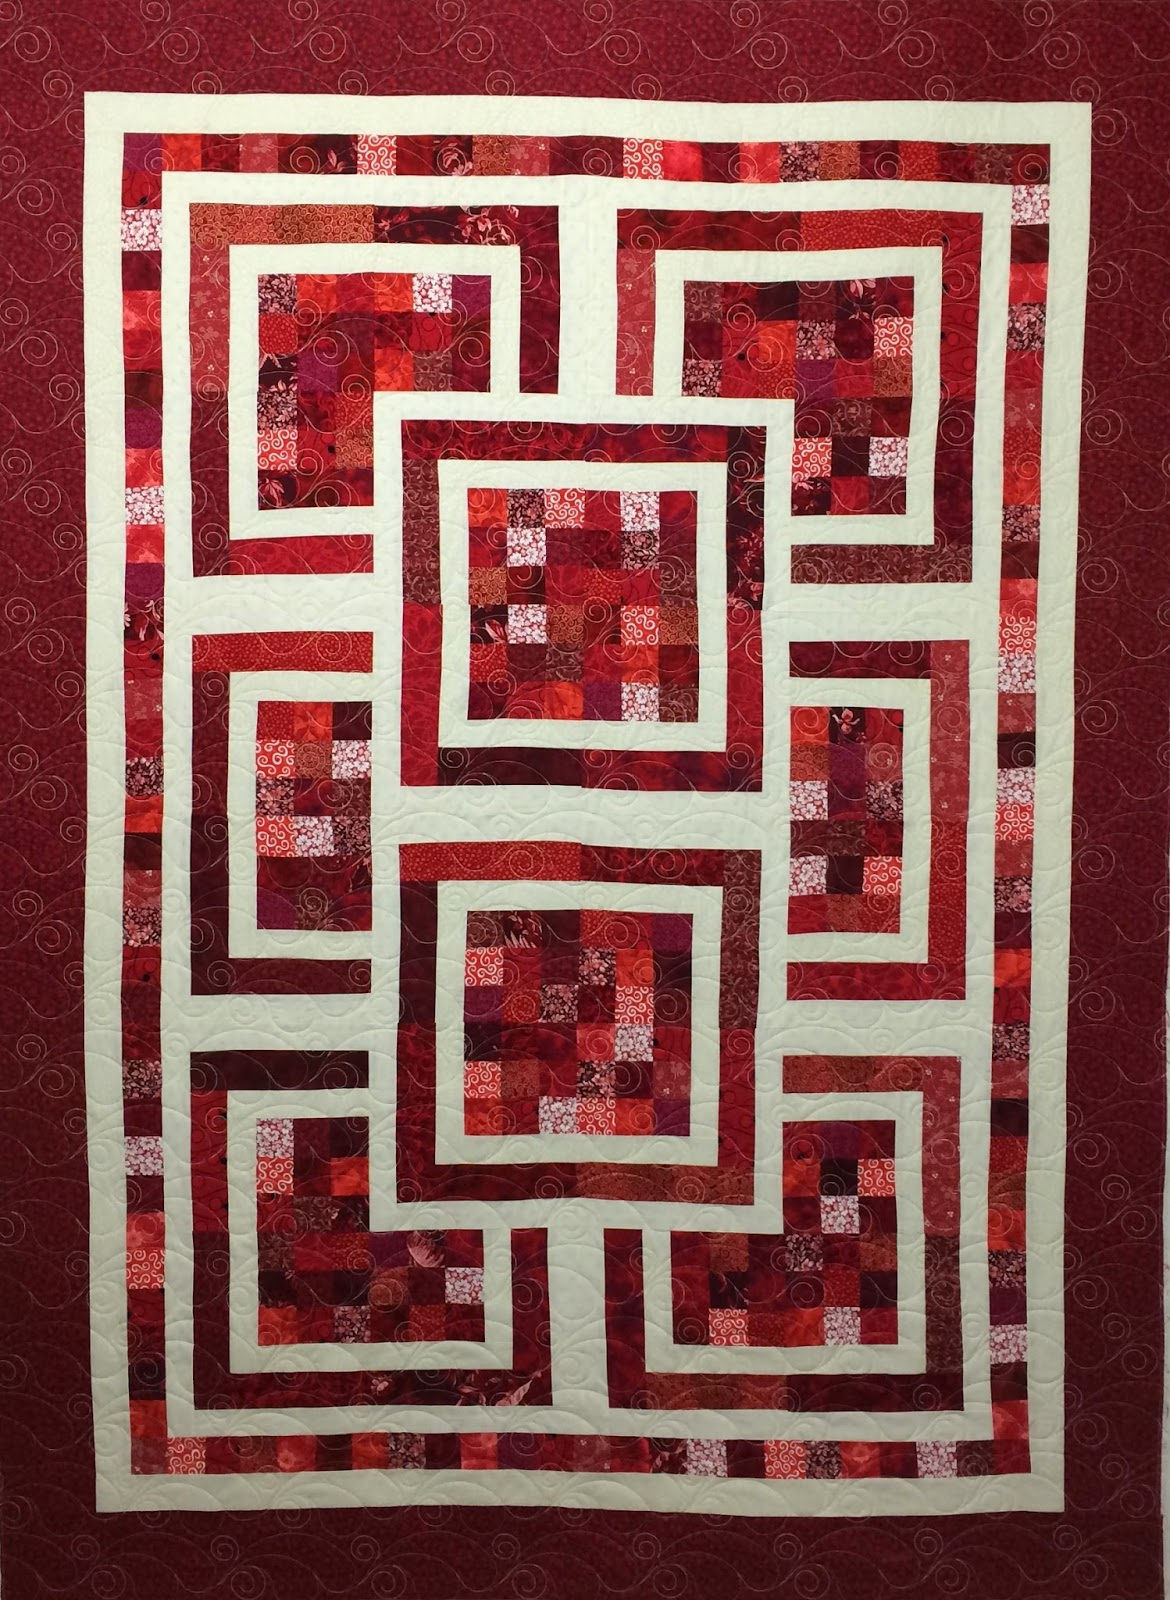 Leanne Strum's Red and White Quilt